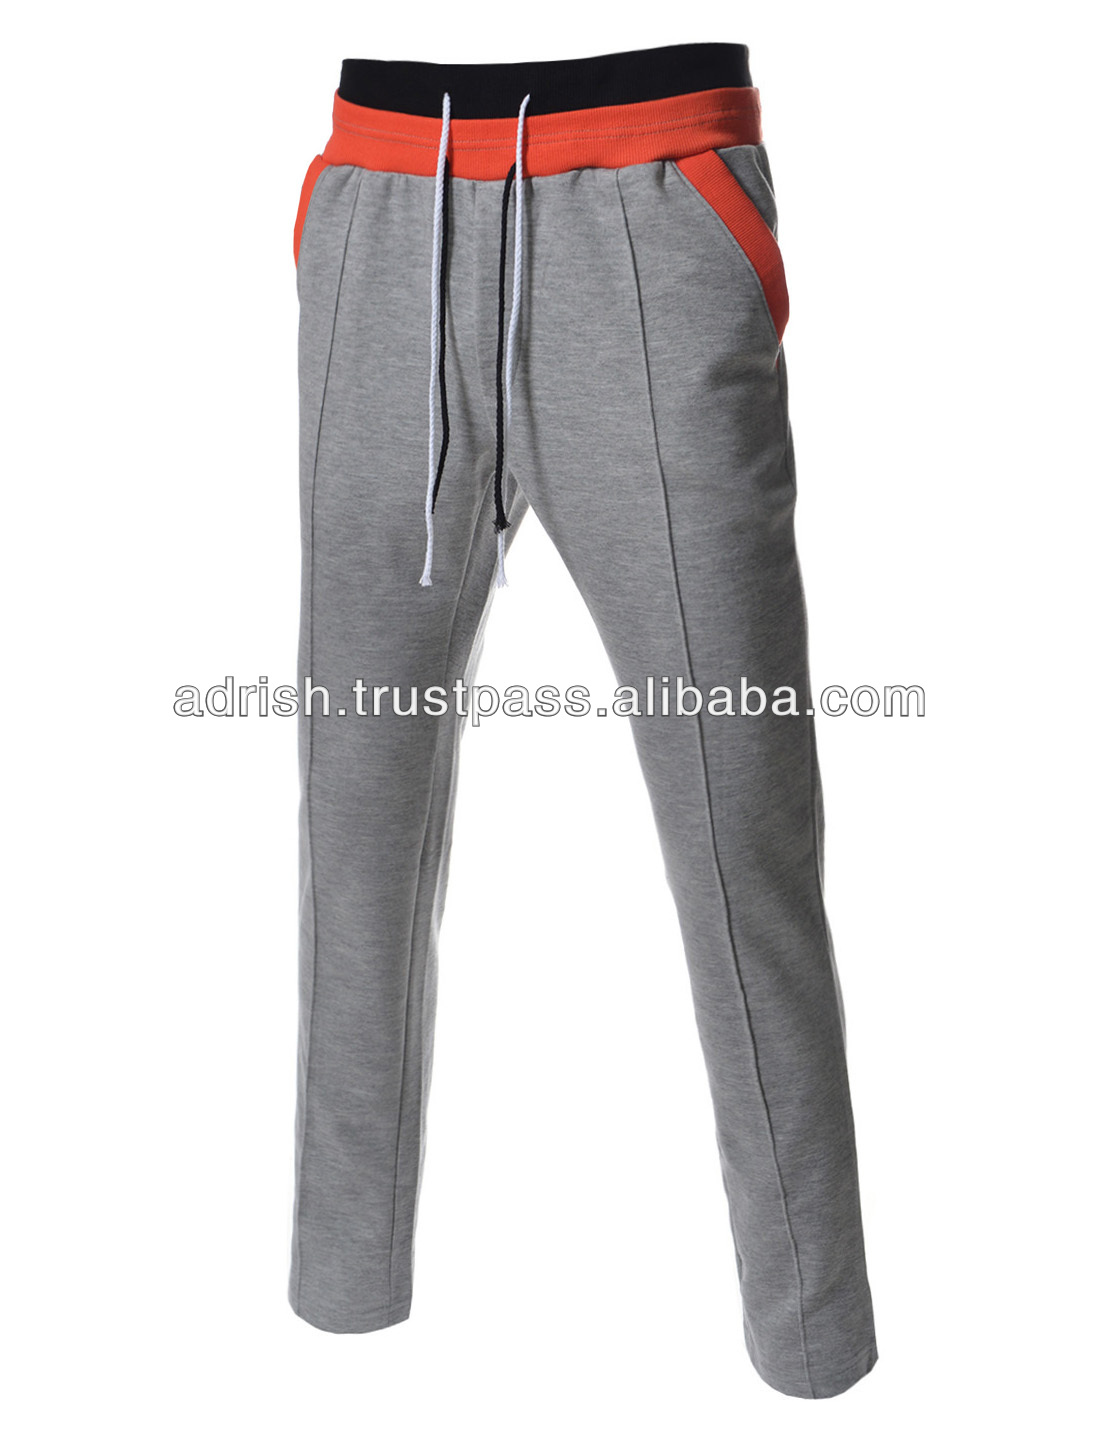 Skinny joggers for women manufacturer